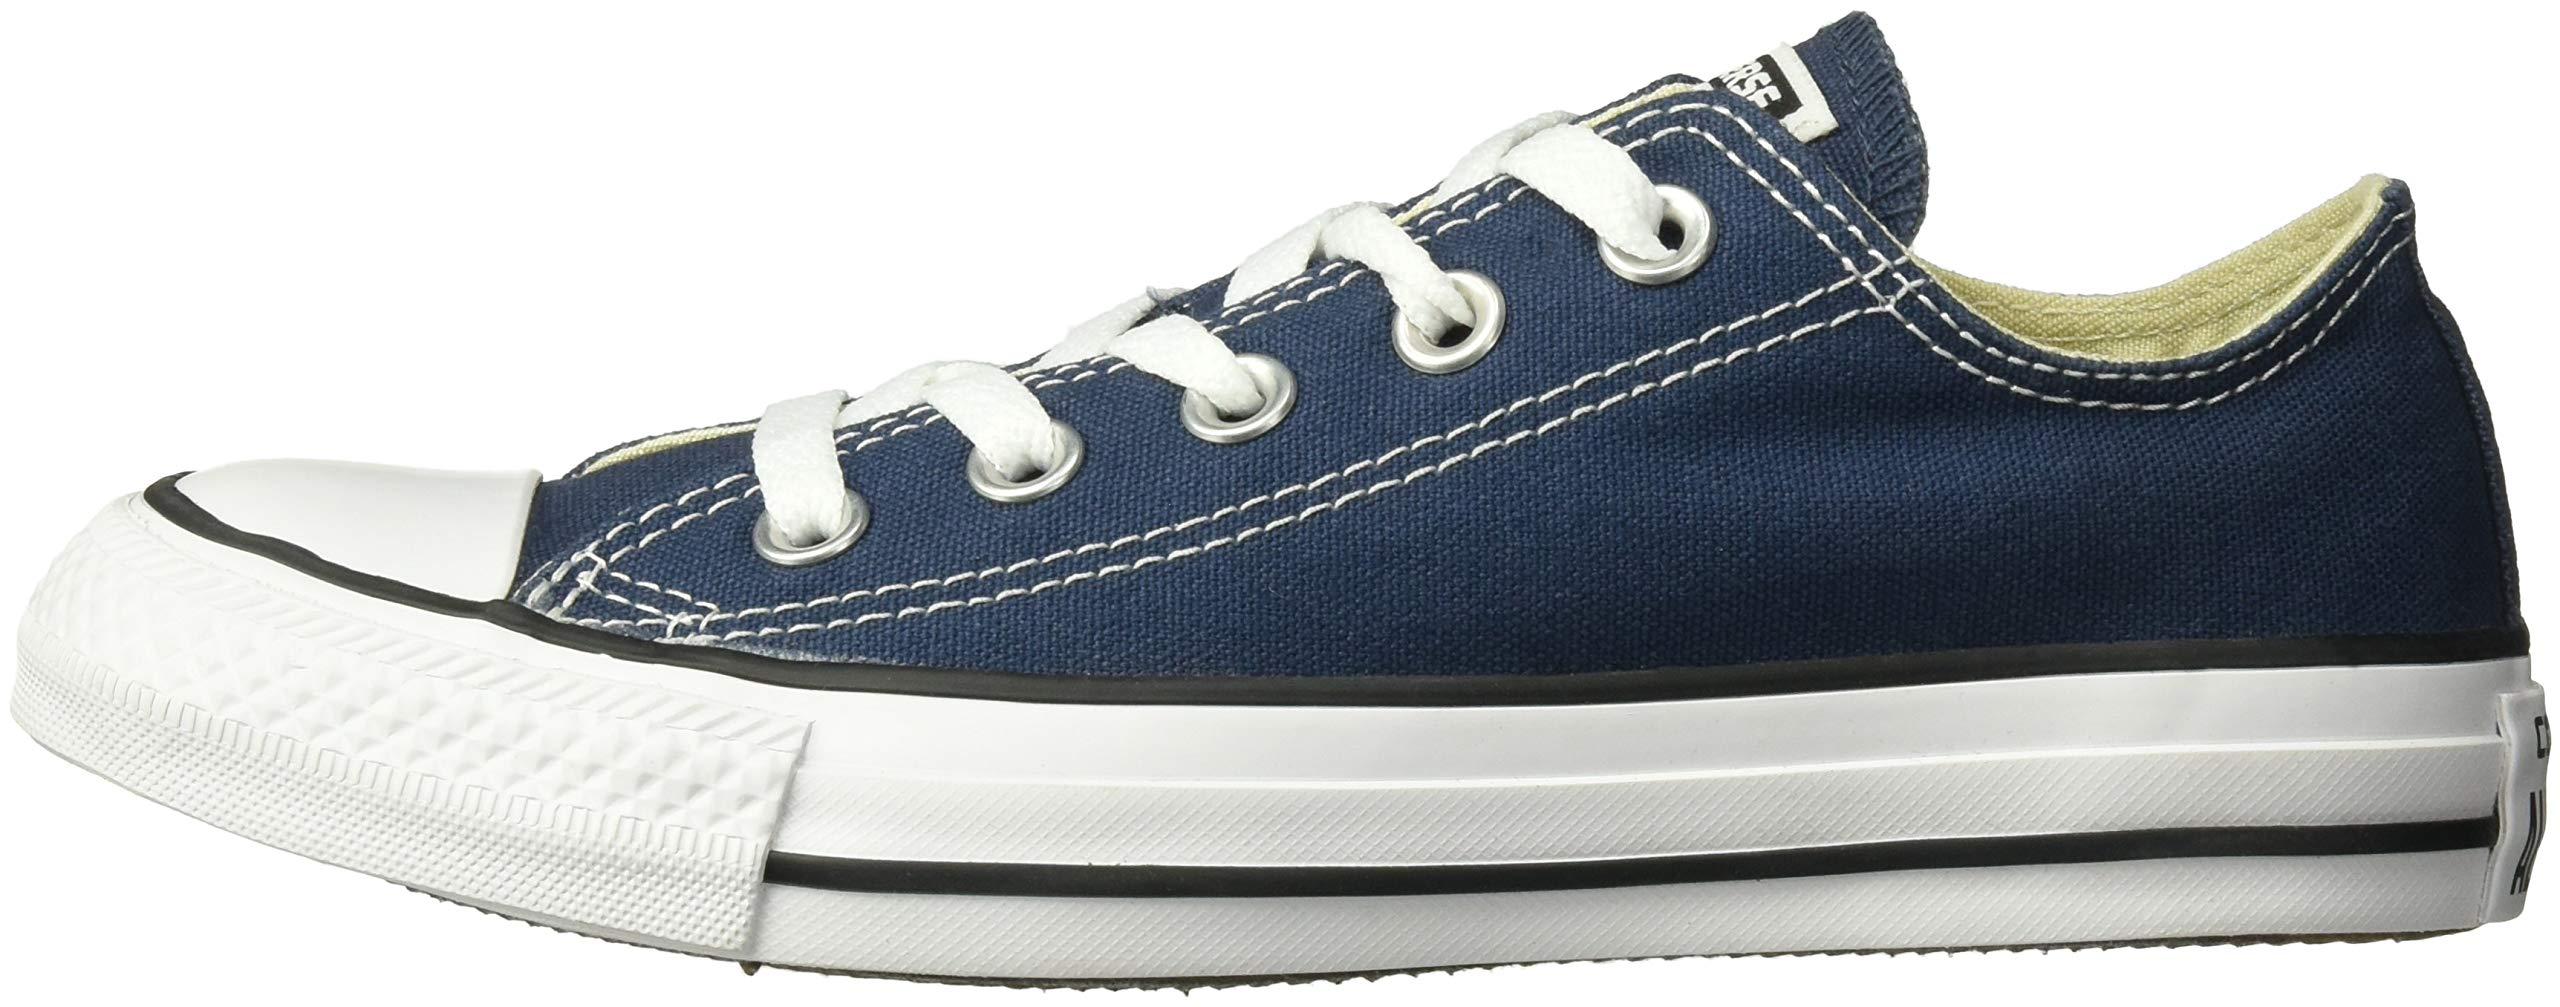 Converse Unisex Chuck Taylor All Star Low Top Navy Sneakers - 12MN-14WO B(M) US by Converse (Image #5)